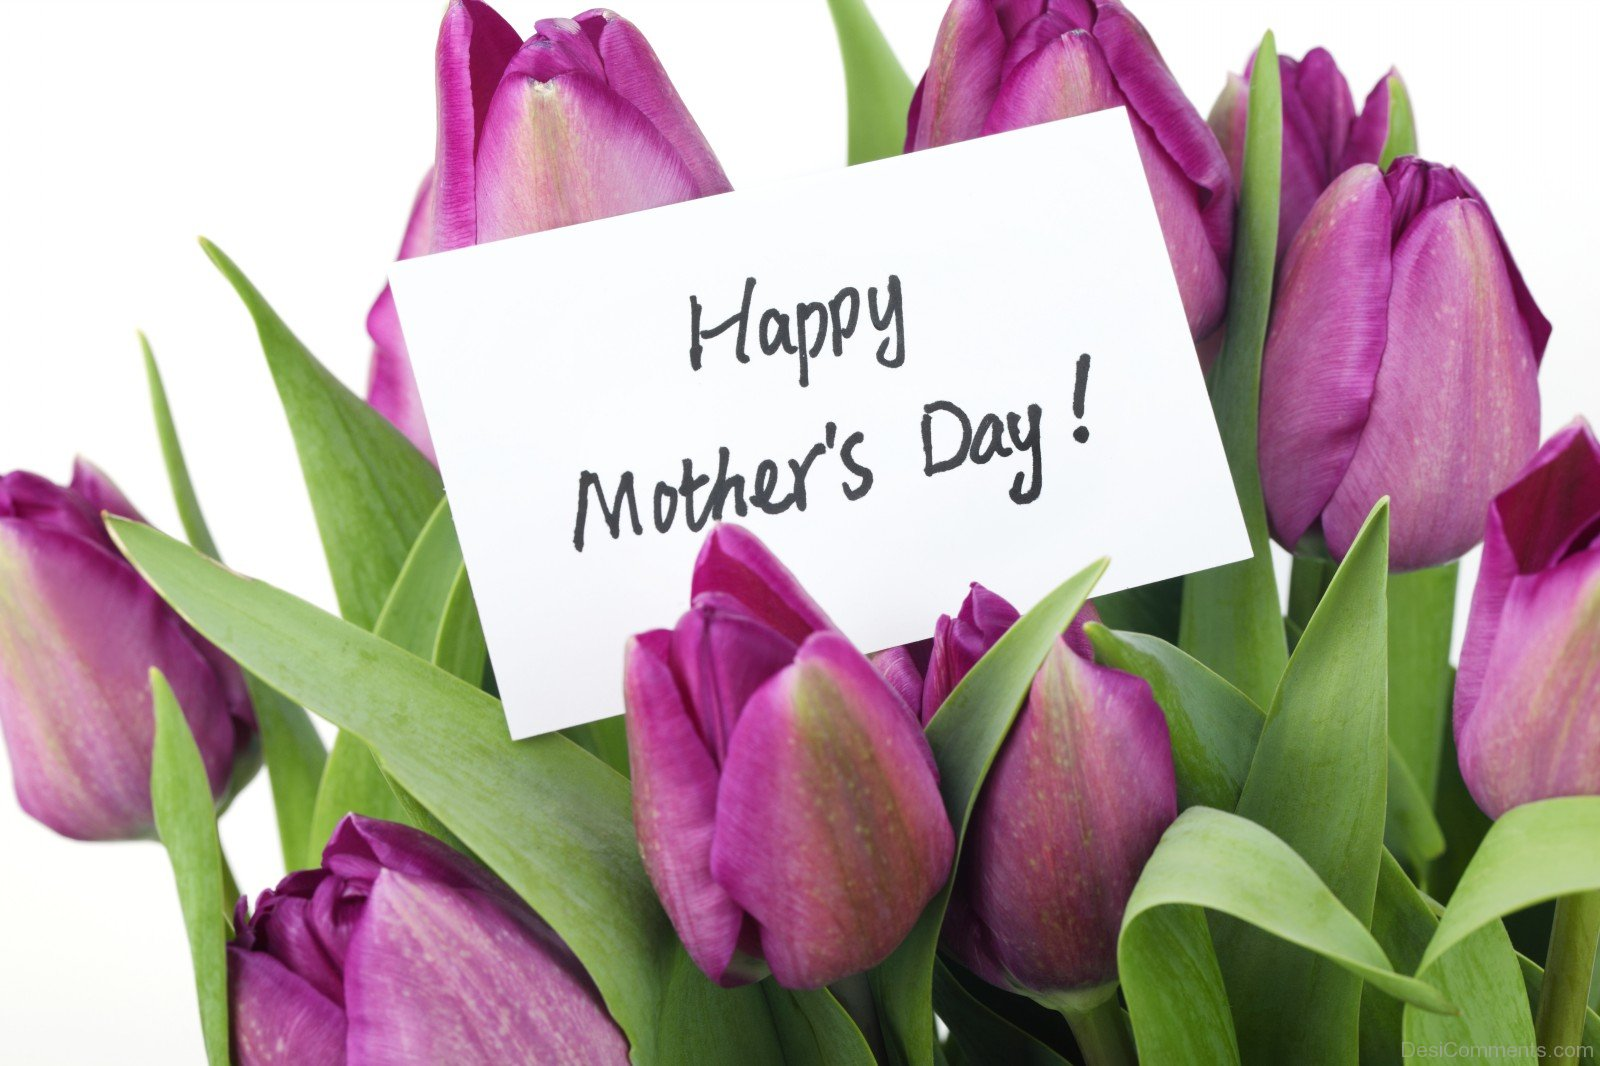 mother's day pictures, images, graphics for facebook, whatsapp, Natural flower